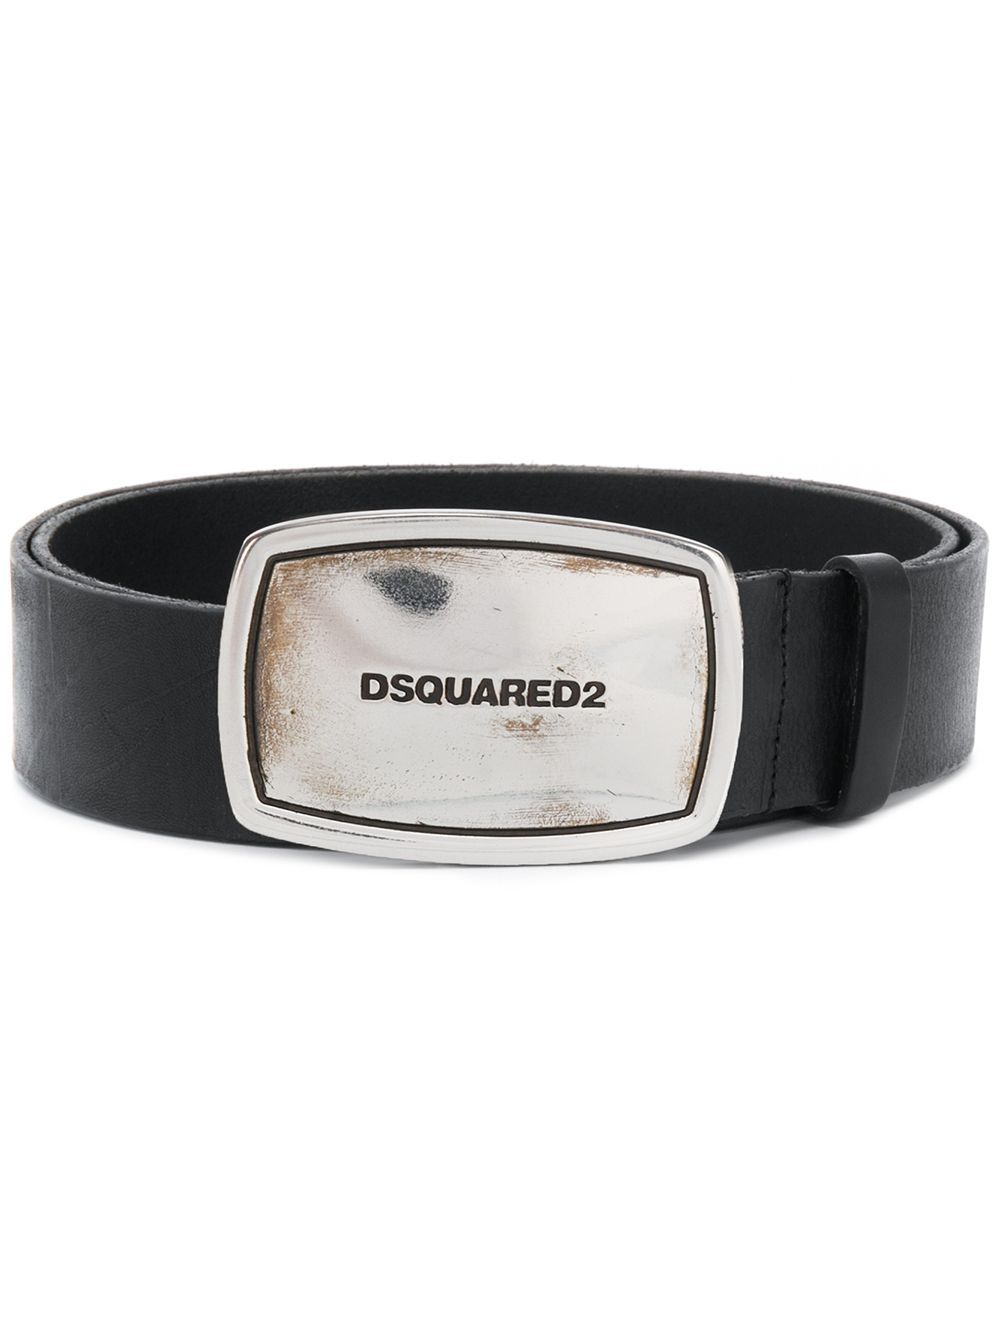 DSQUARED2 Logo Plaque Belt Black